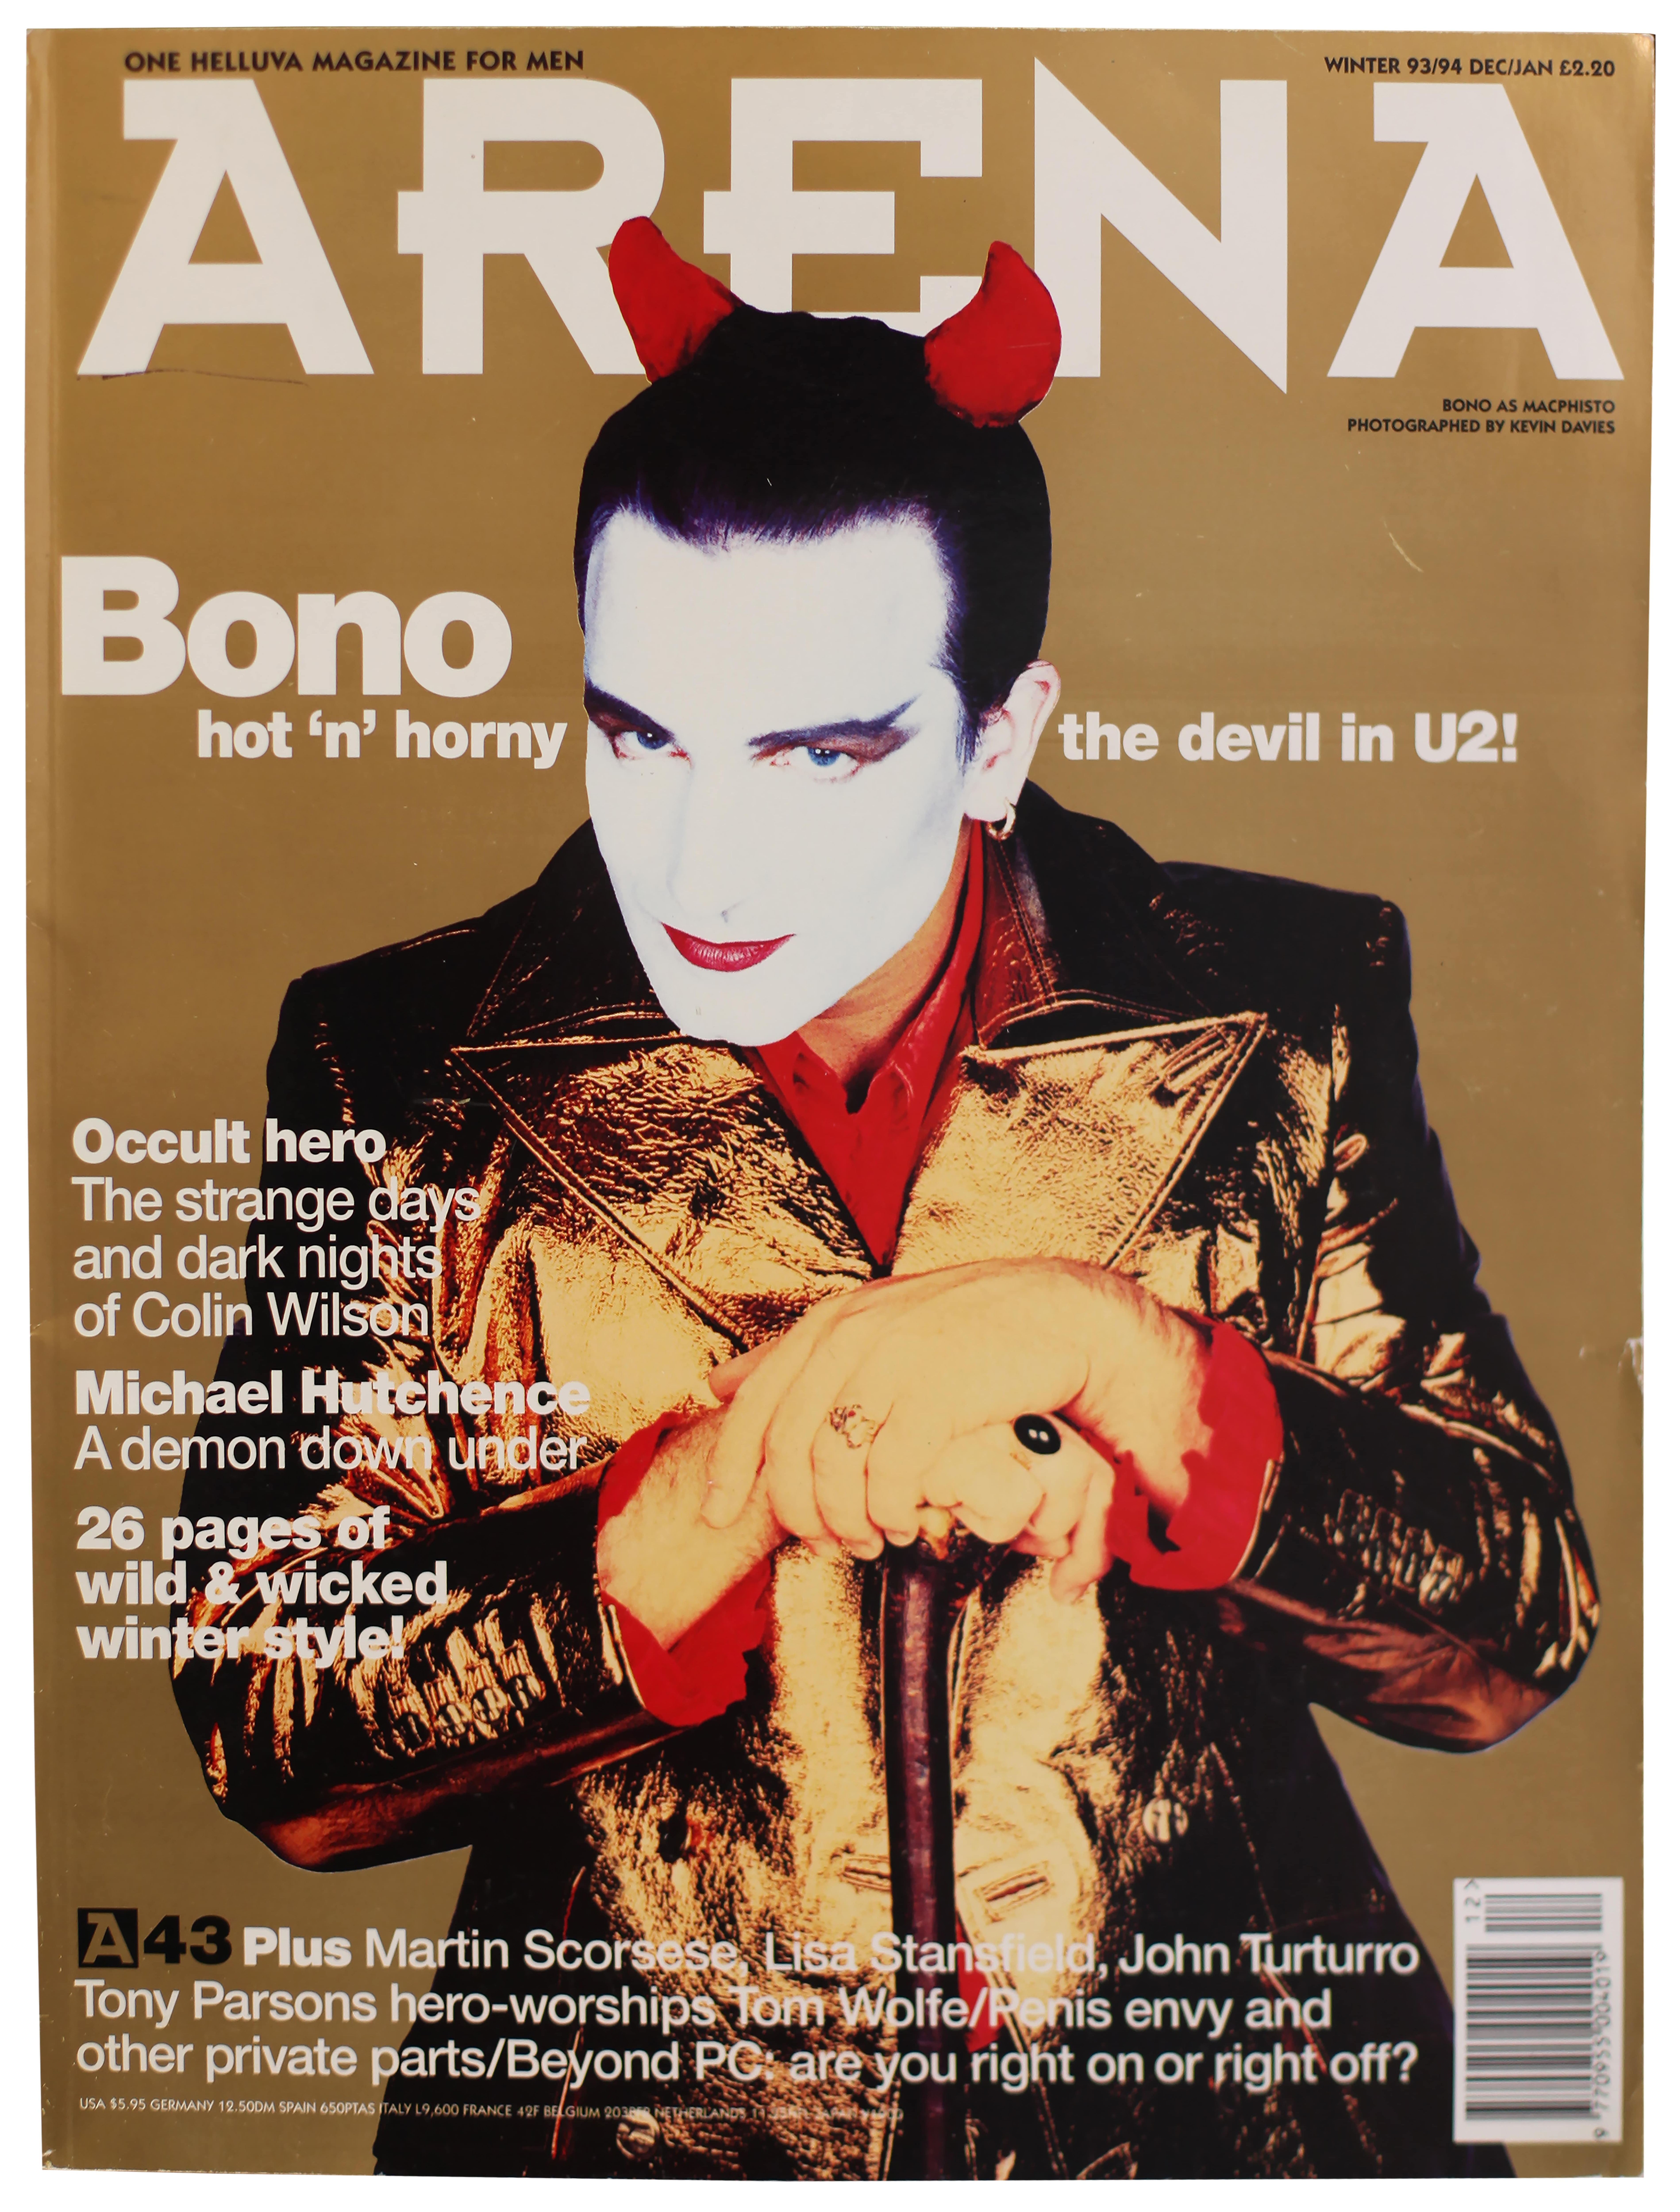 Bono's JCH 'MacPhisto' outfit on the cover of Arena, December 1993